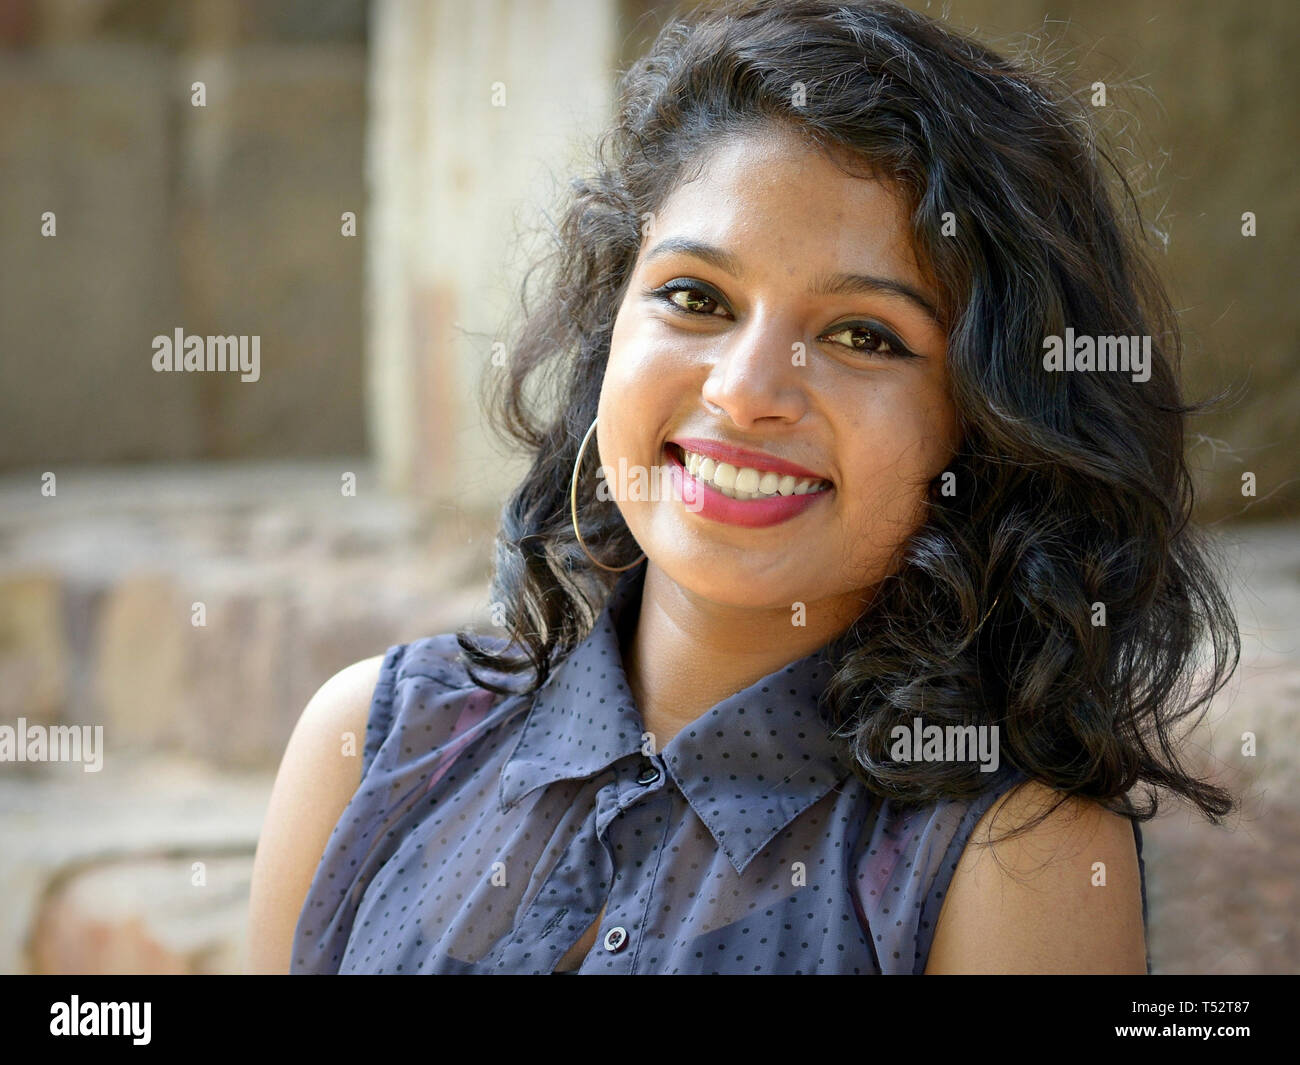 Attractive young Indian woman with hoop earrings and